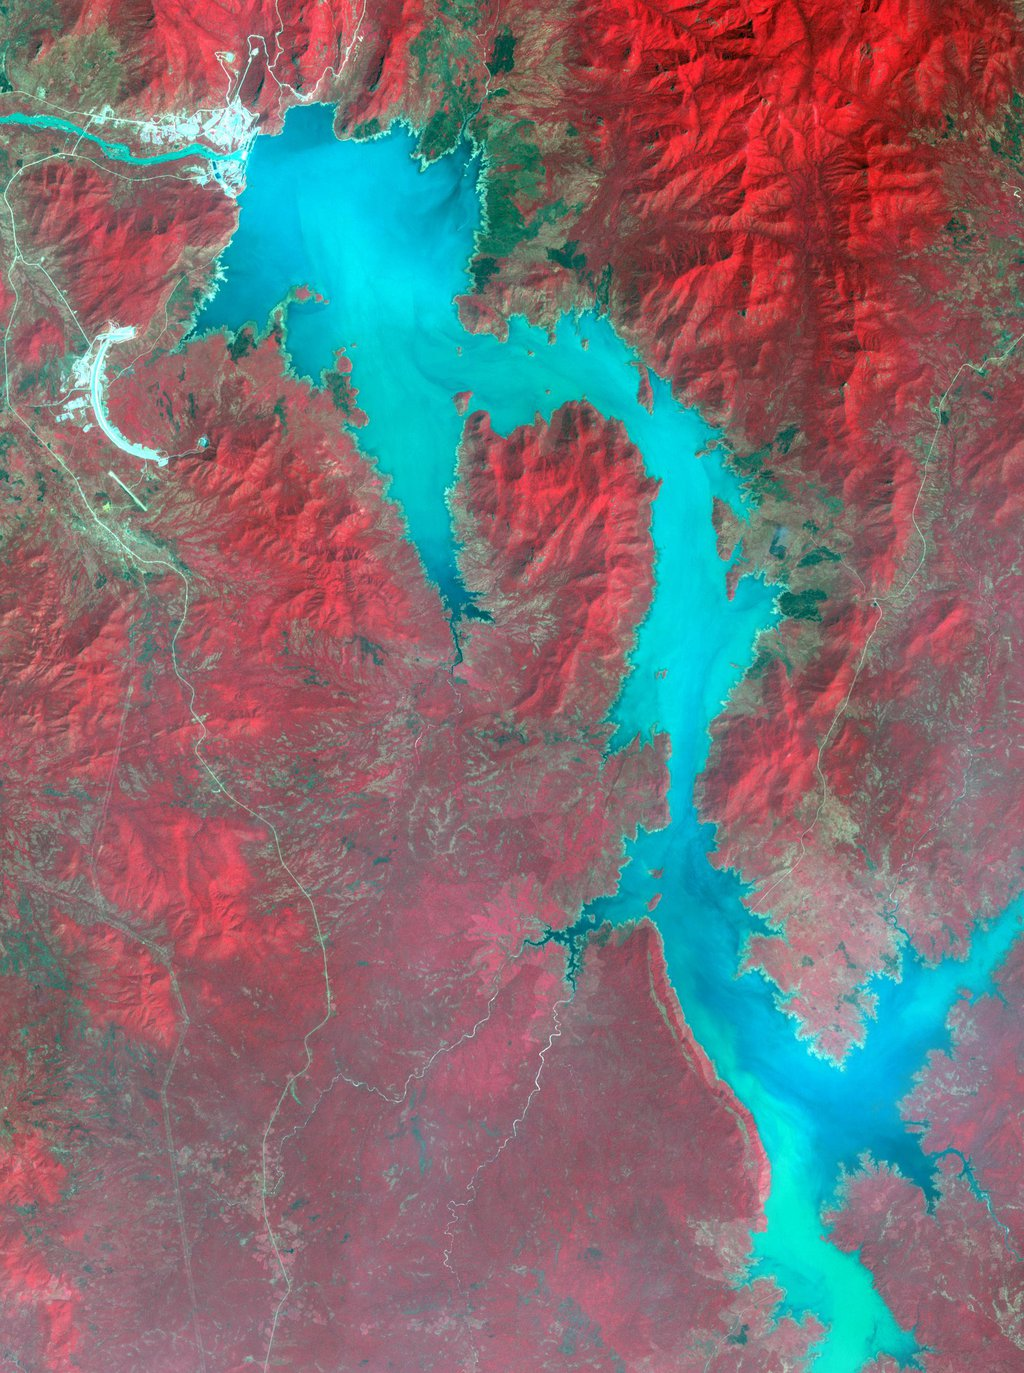 NASA's Terra spacecraft shows filling of the Grand Ethiopian Renaissance Dam (GERD) along the Blue Nile River is well under way near the Ethiopia-Sudan border.